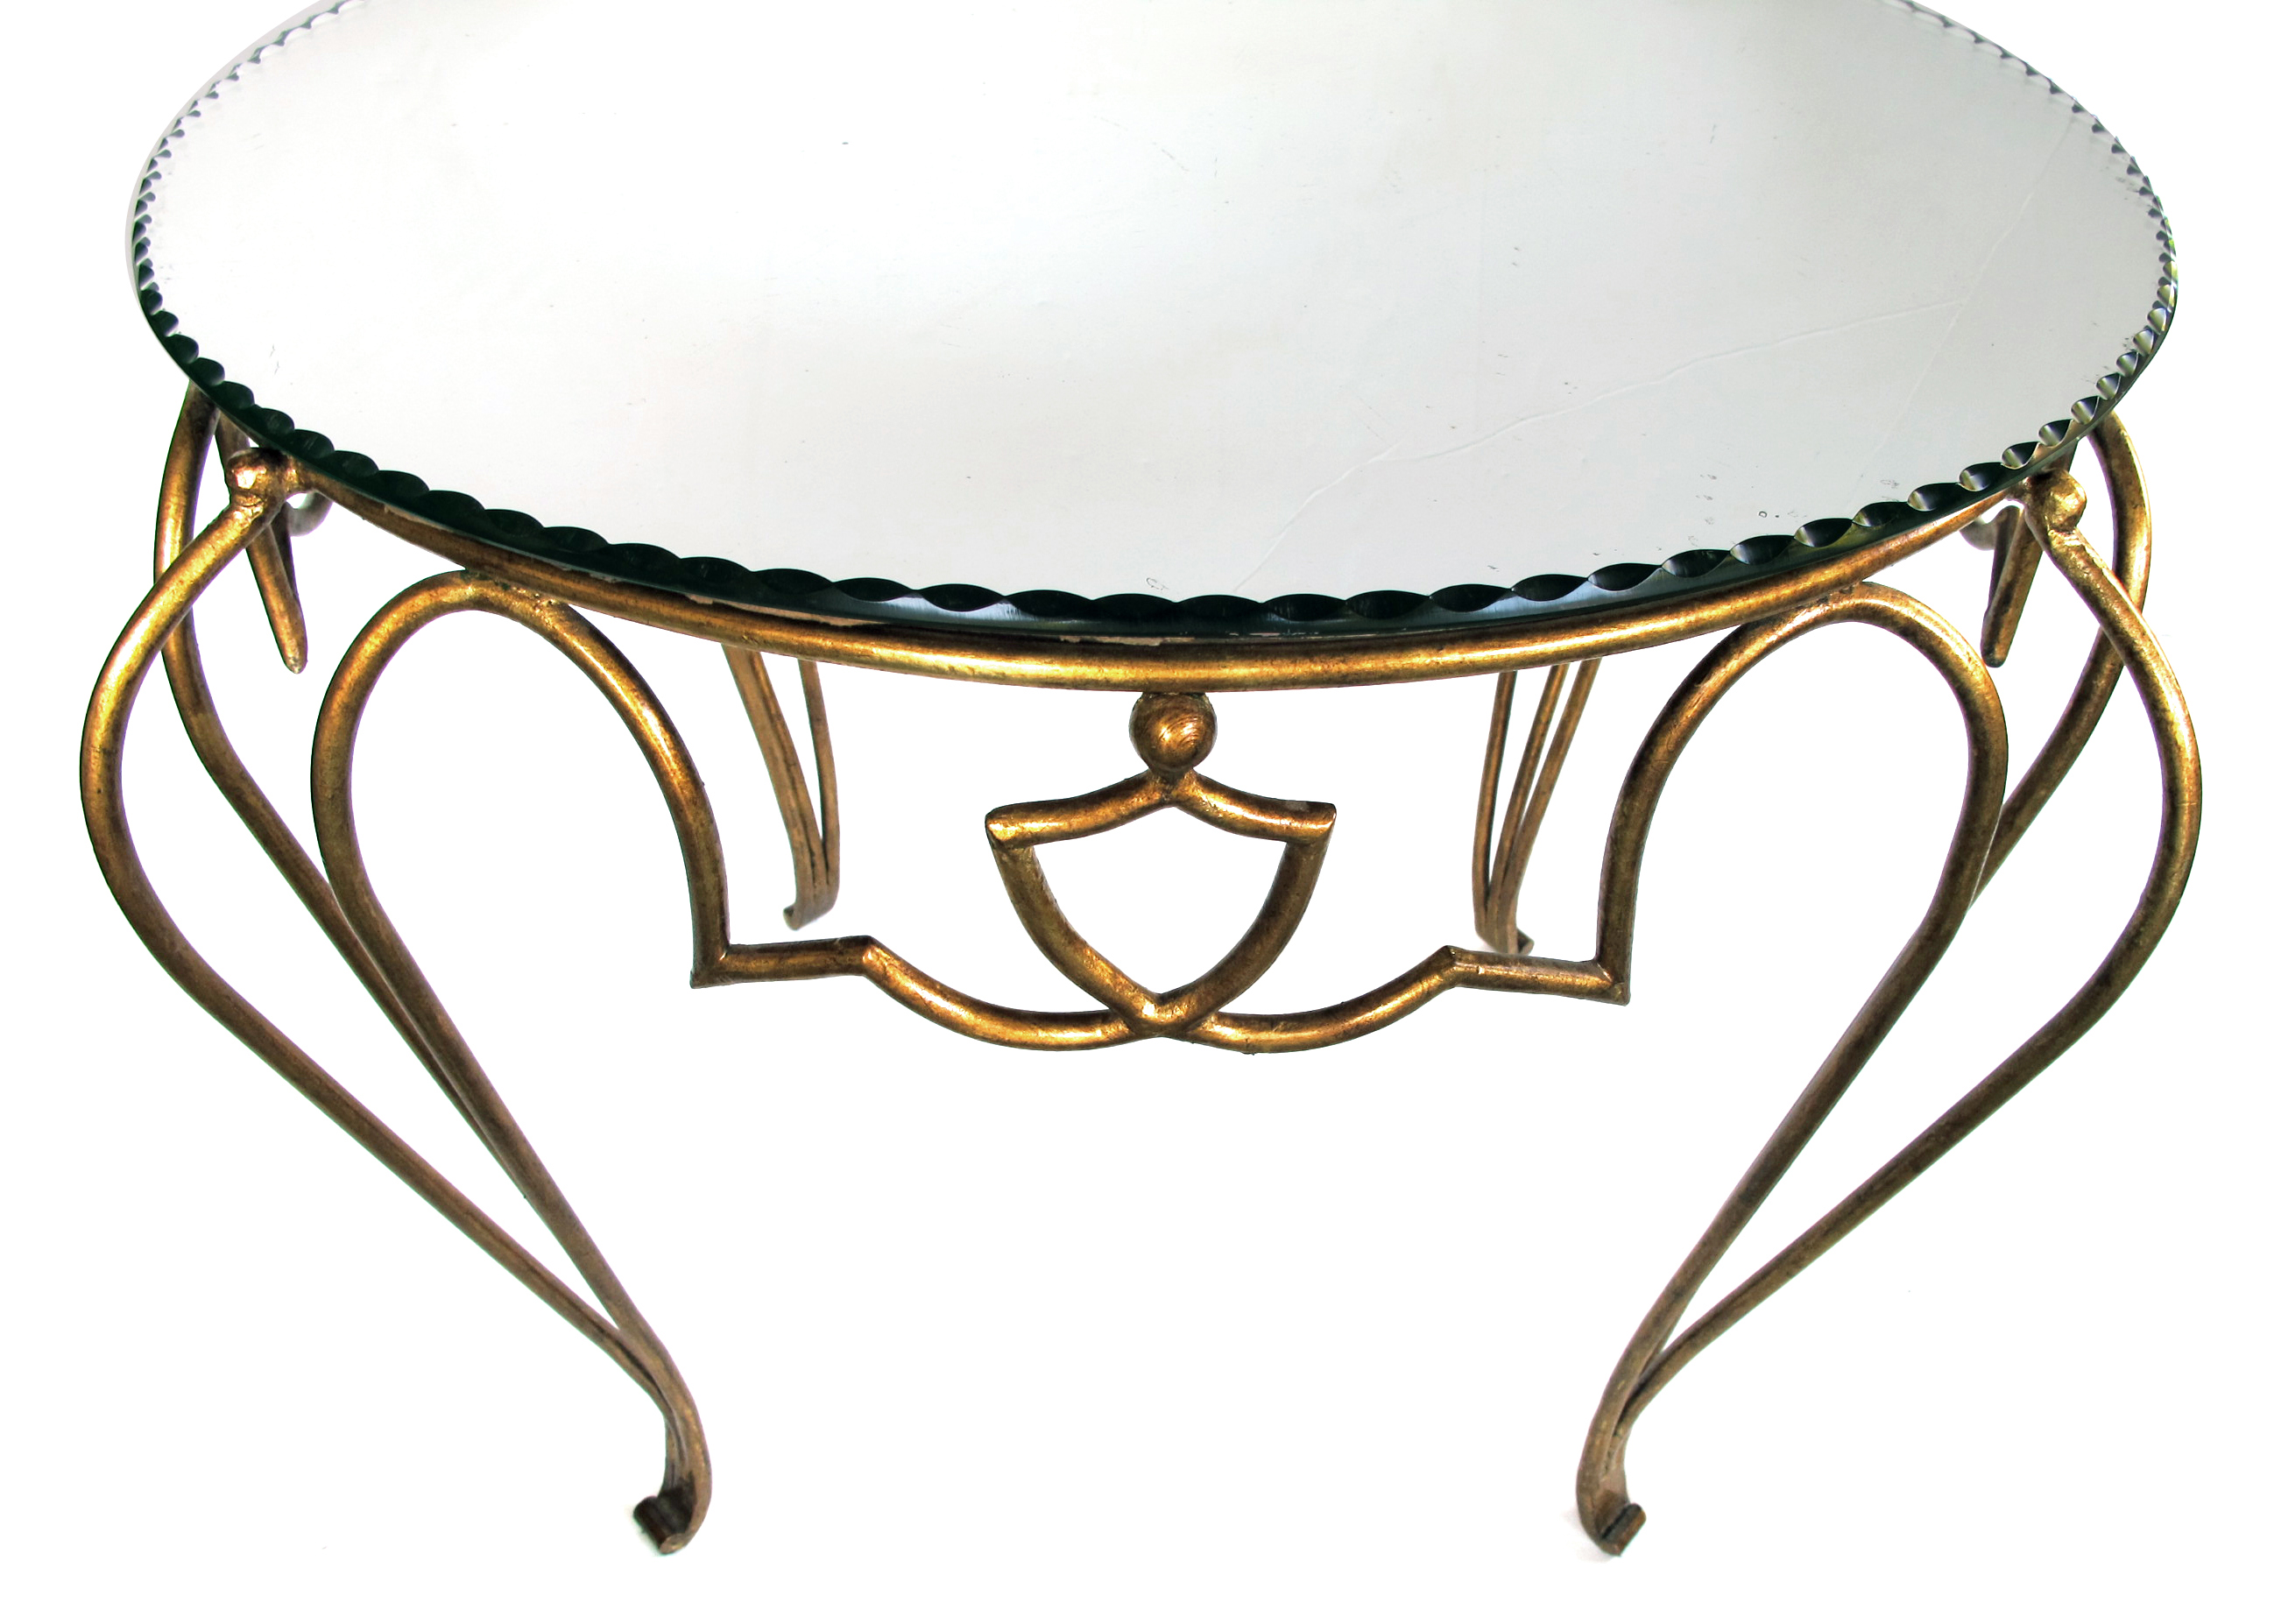 A Chic French Art Deco Gilt Iron Circular Table With